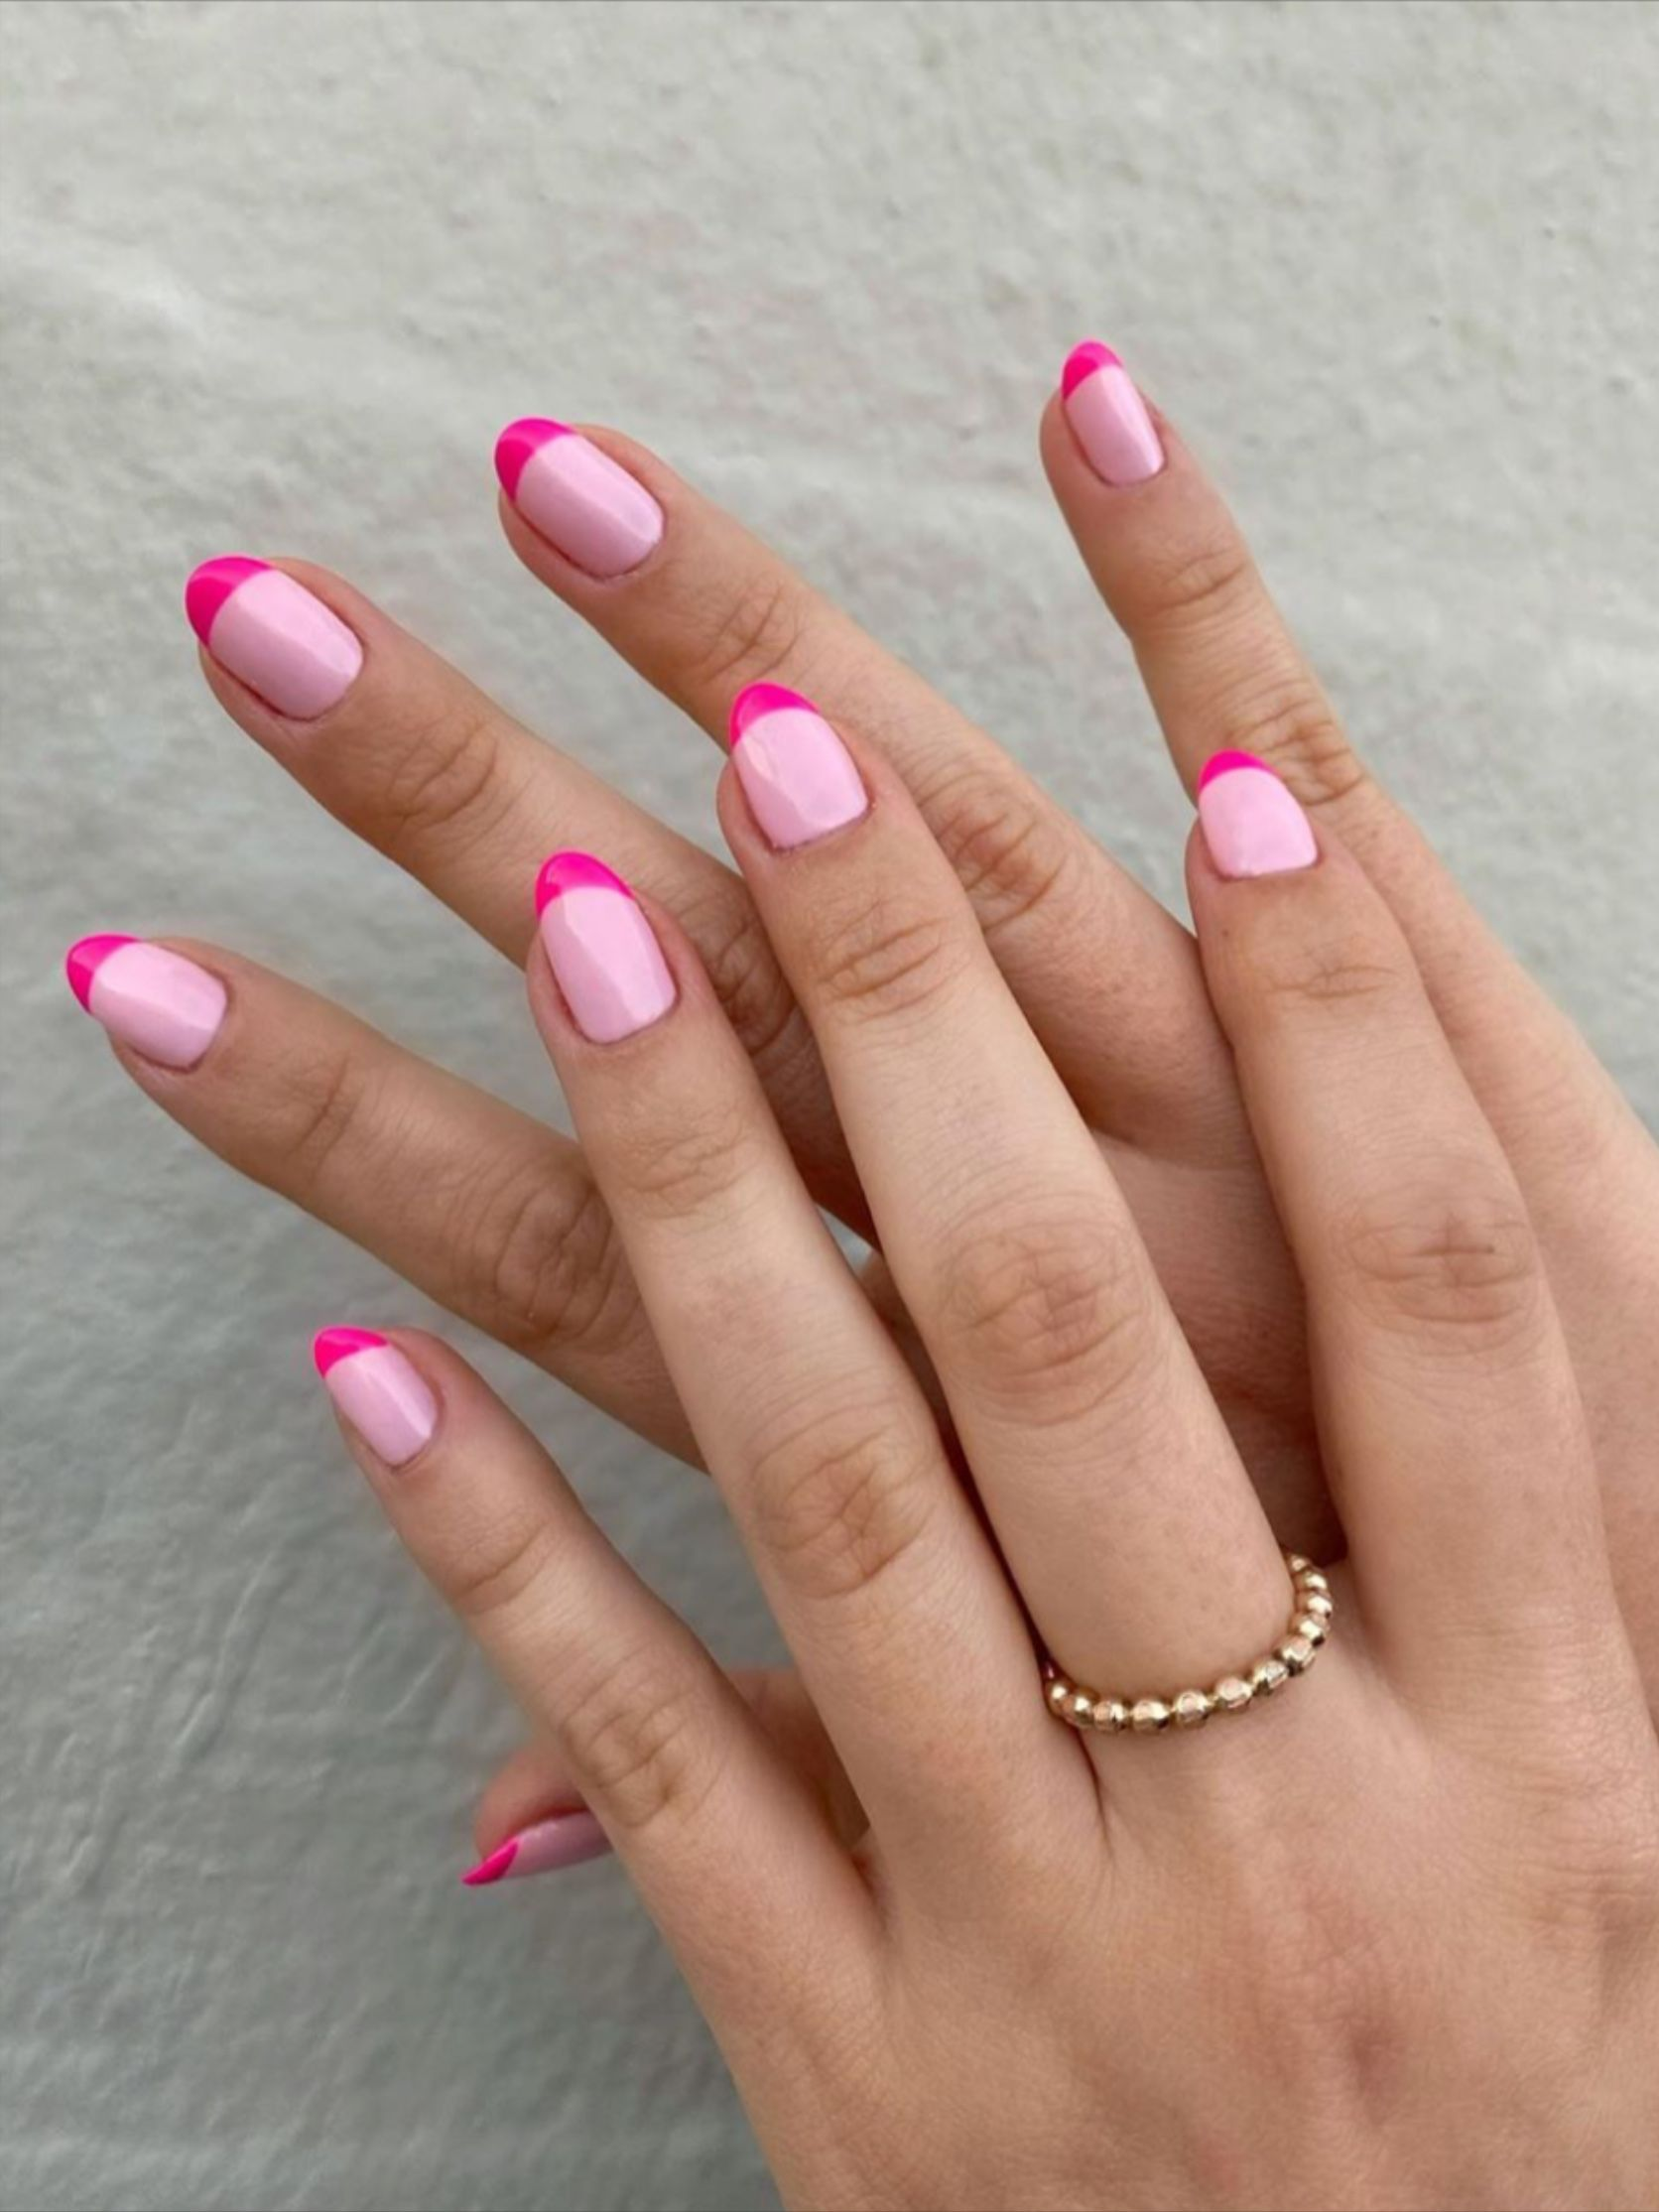 The New Nail Art Trend You Need To Try Now